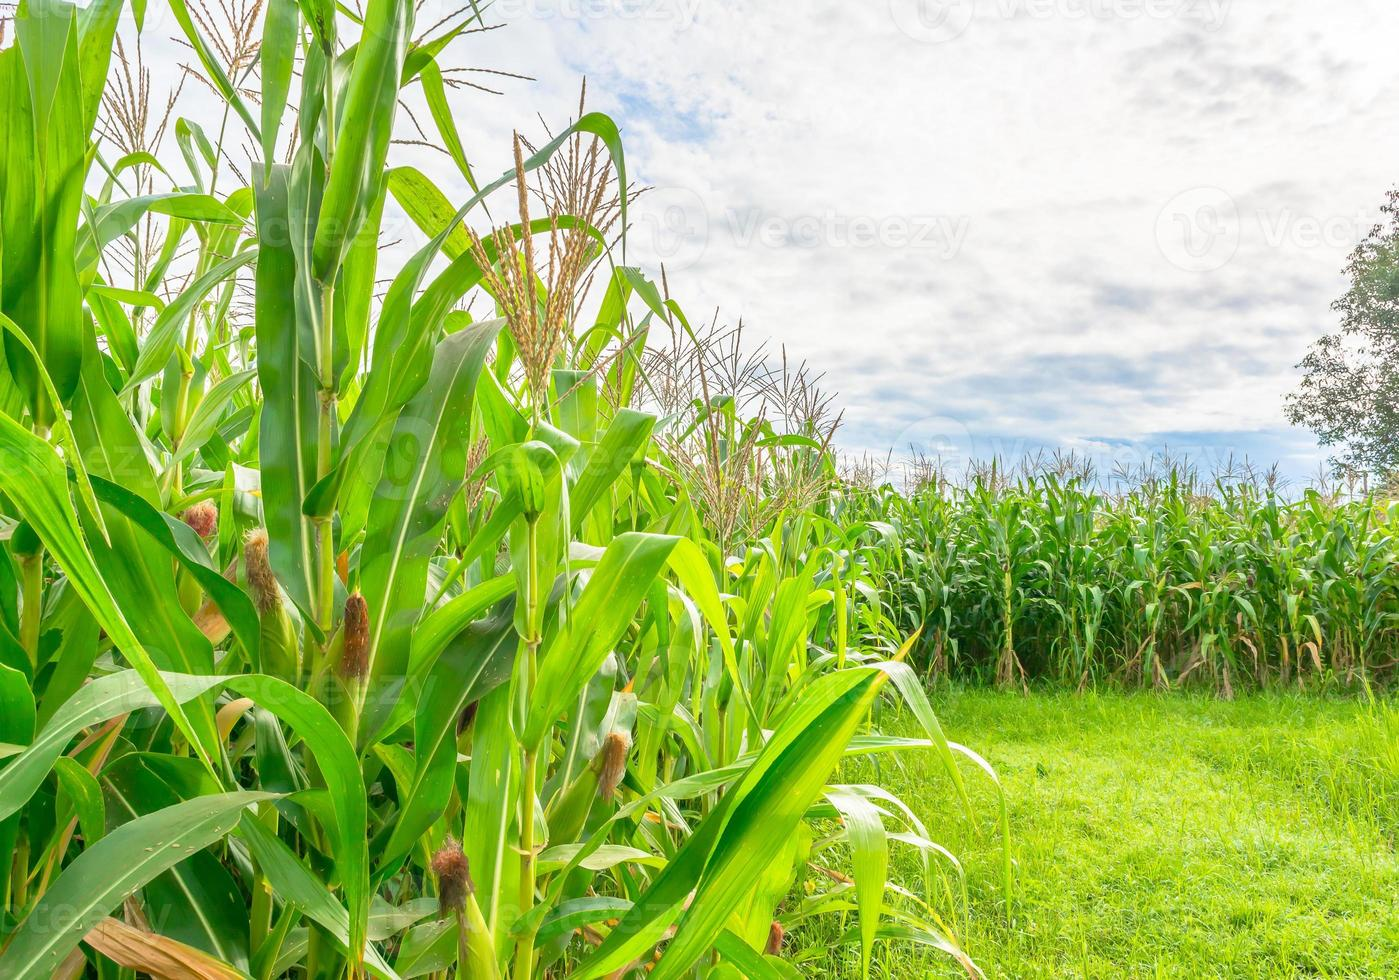 image of corn field and sky in background photo